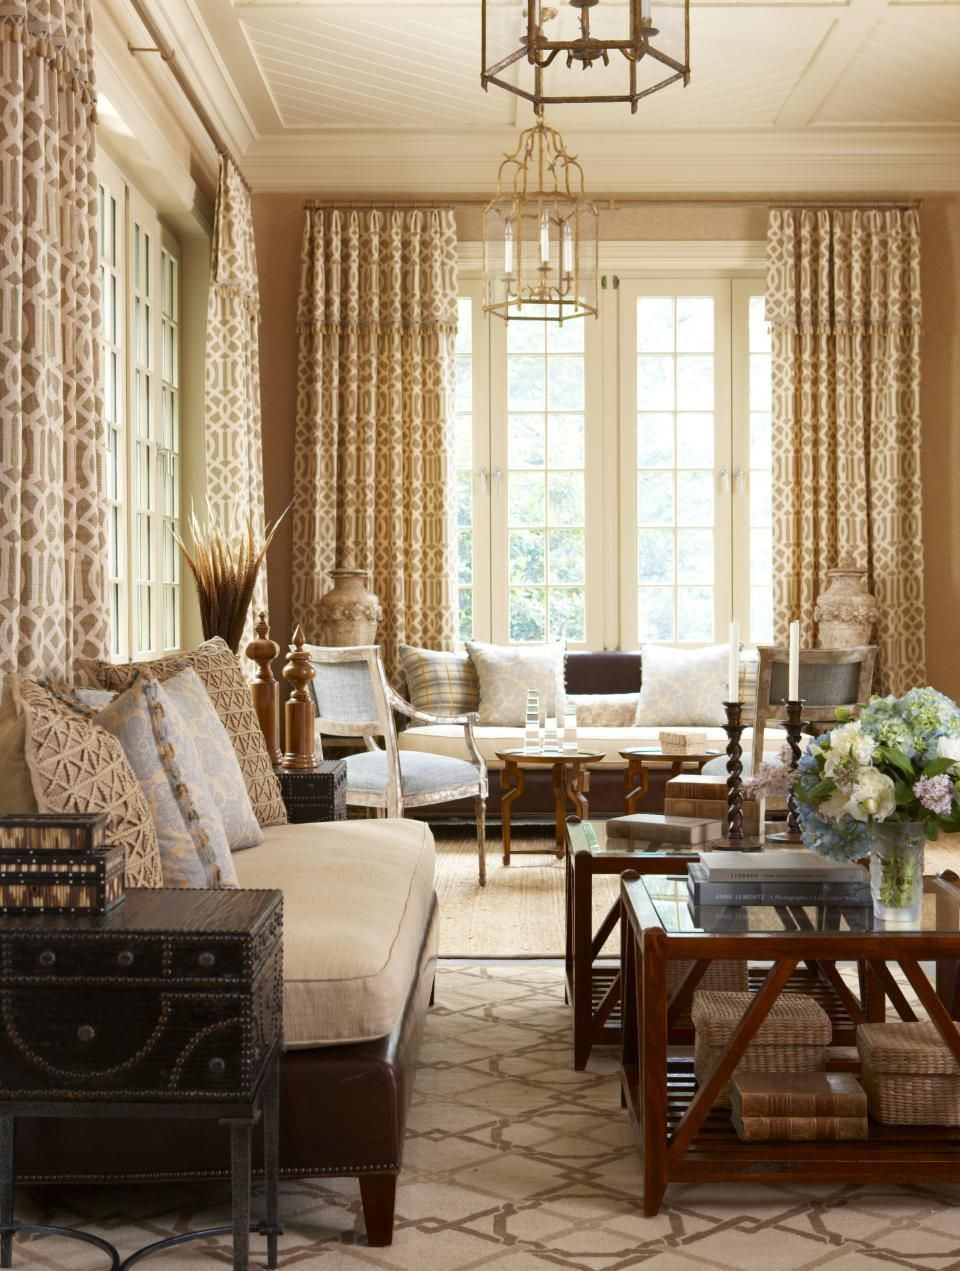 Interior Design Ideas For Sunrooms With Images House And Home